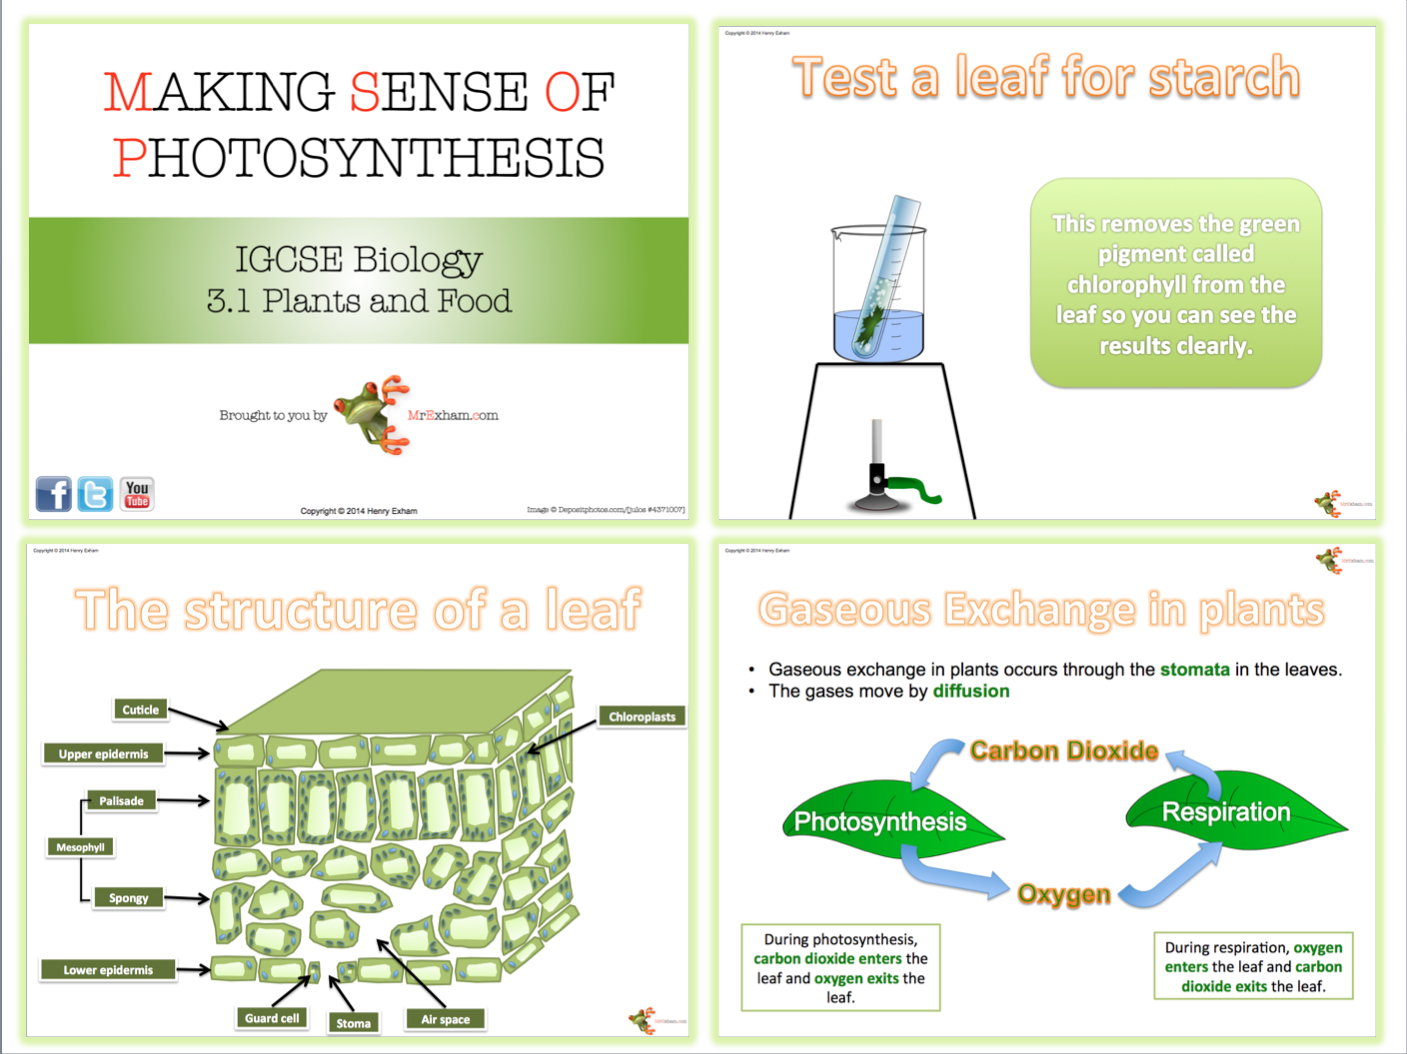 biology gcse coursework photosynthesis Gcse biology revision section covering plant nutrion, photosynthesis, green plants, reaction, carbon dioxide, water, glucose, oxygen, sunlight, chlorophyll and.